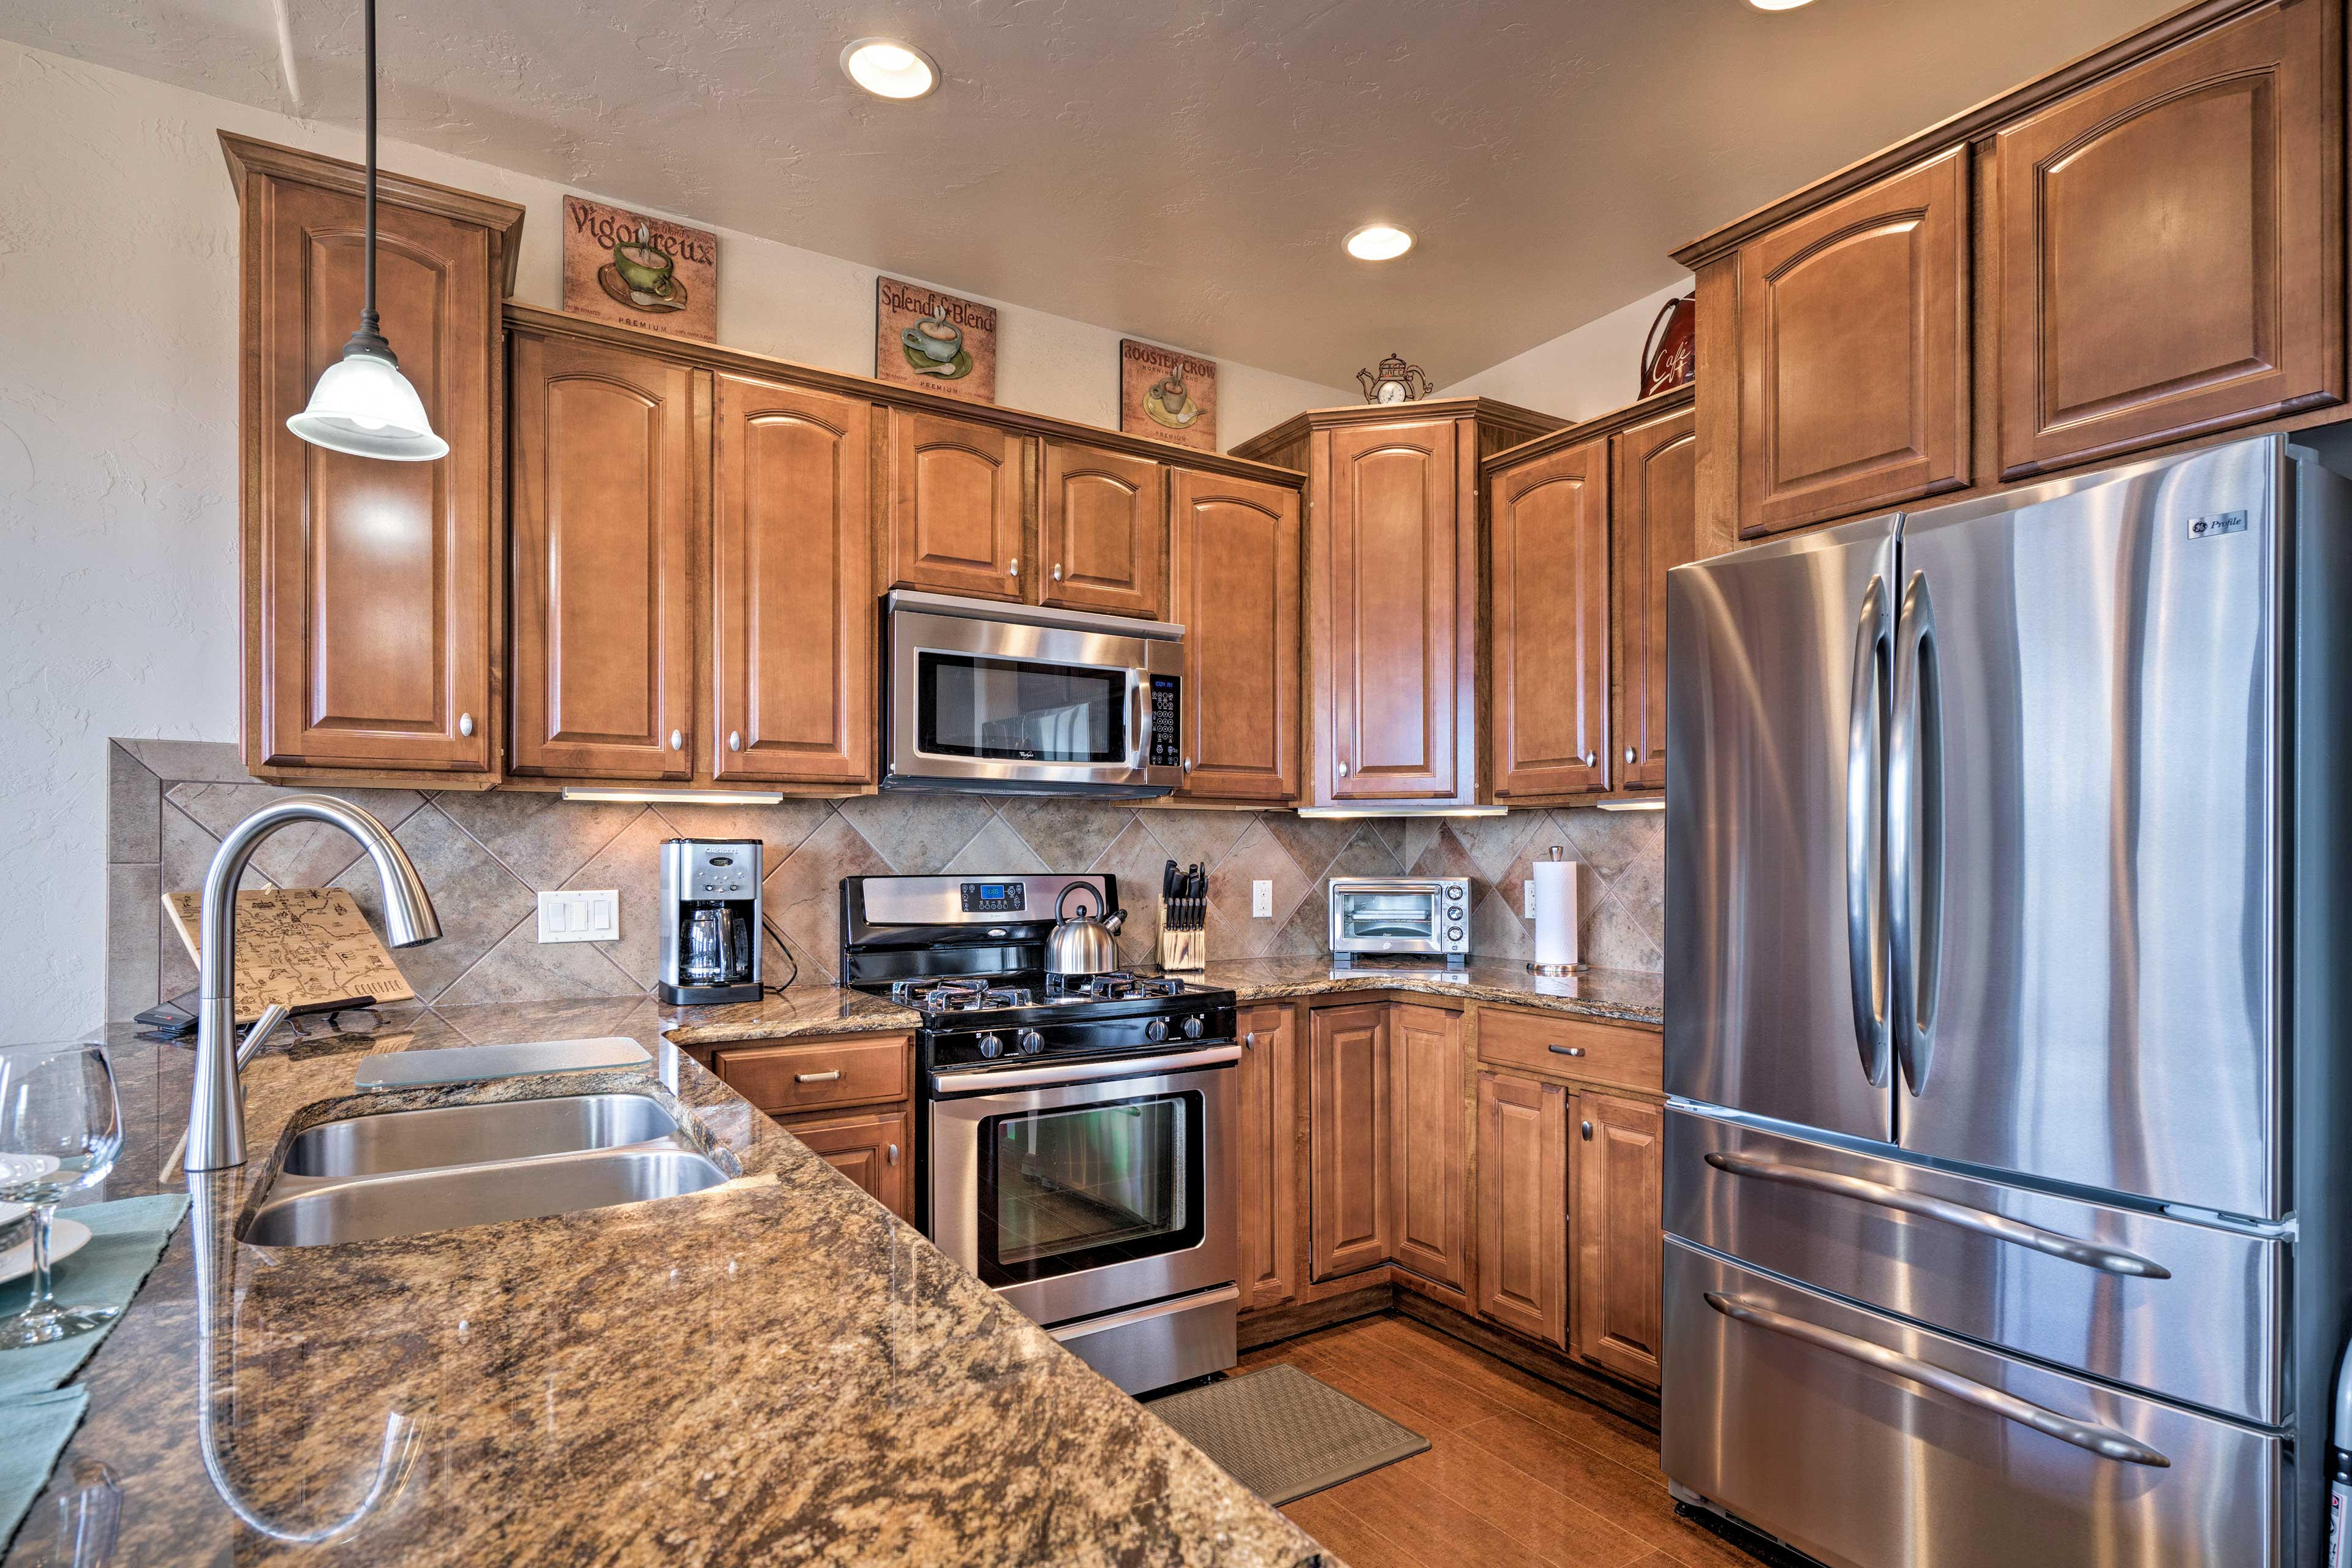 Utilize ample counter space while preparing homemade meals.